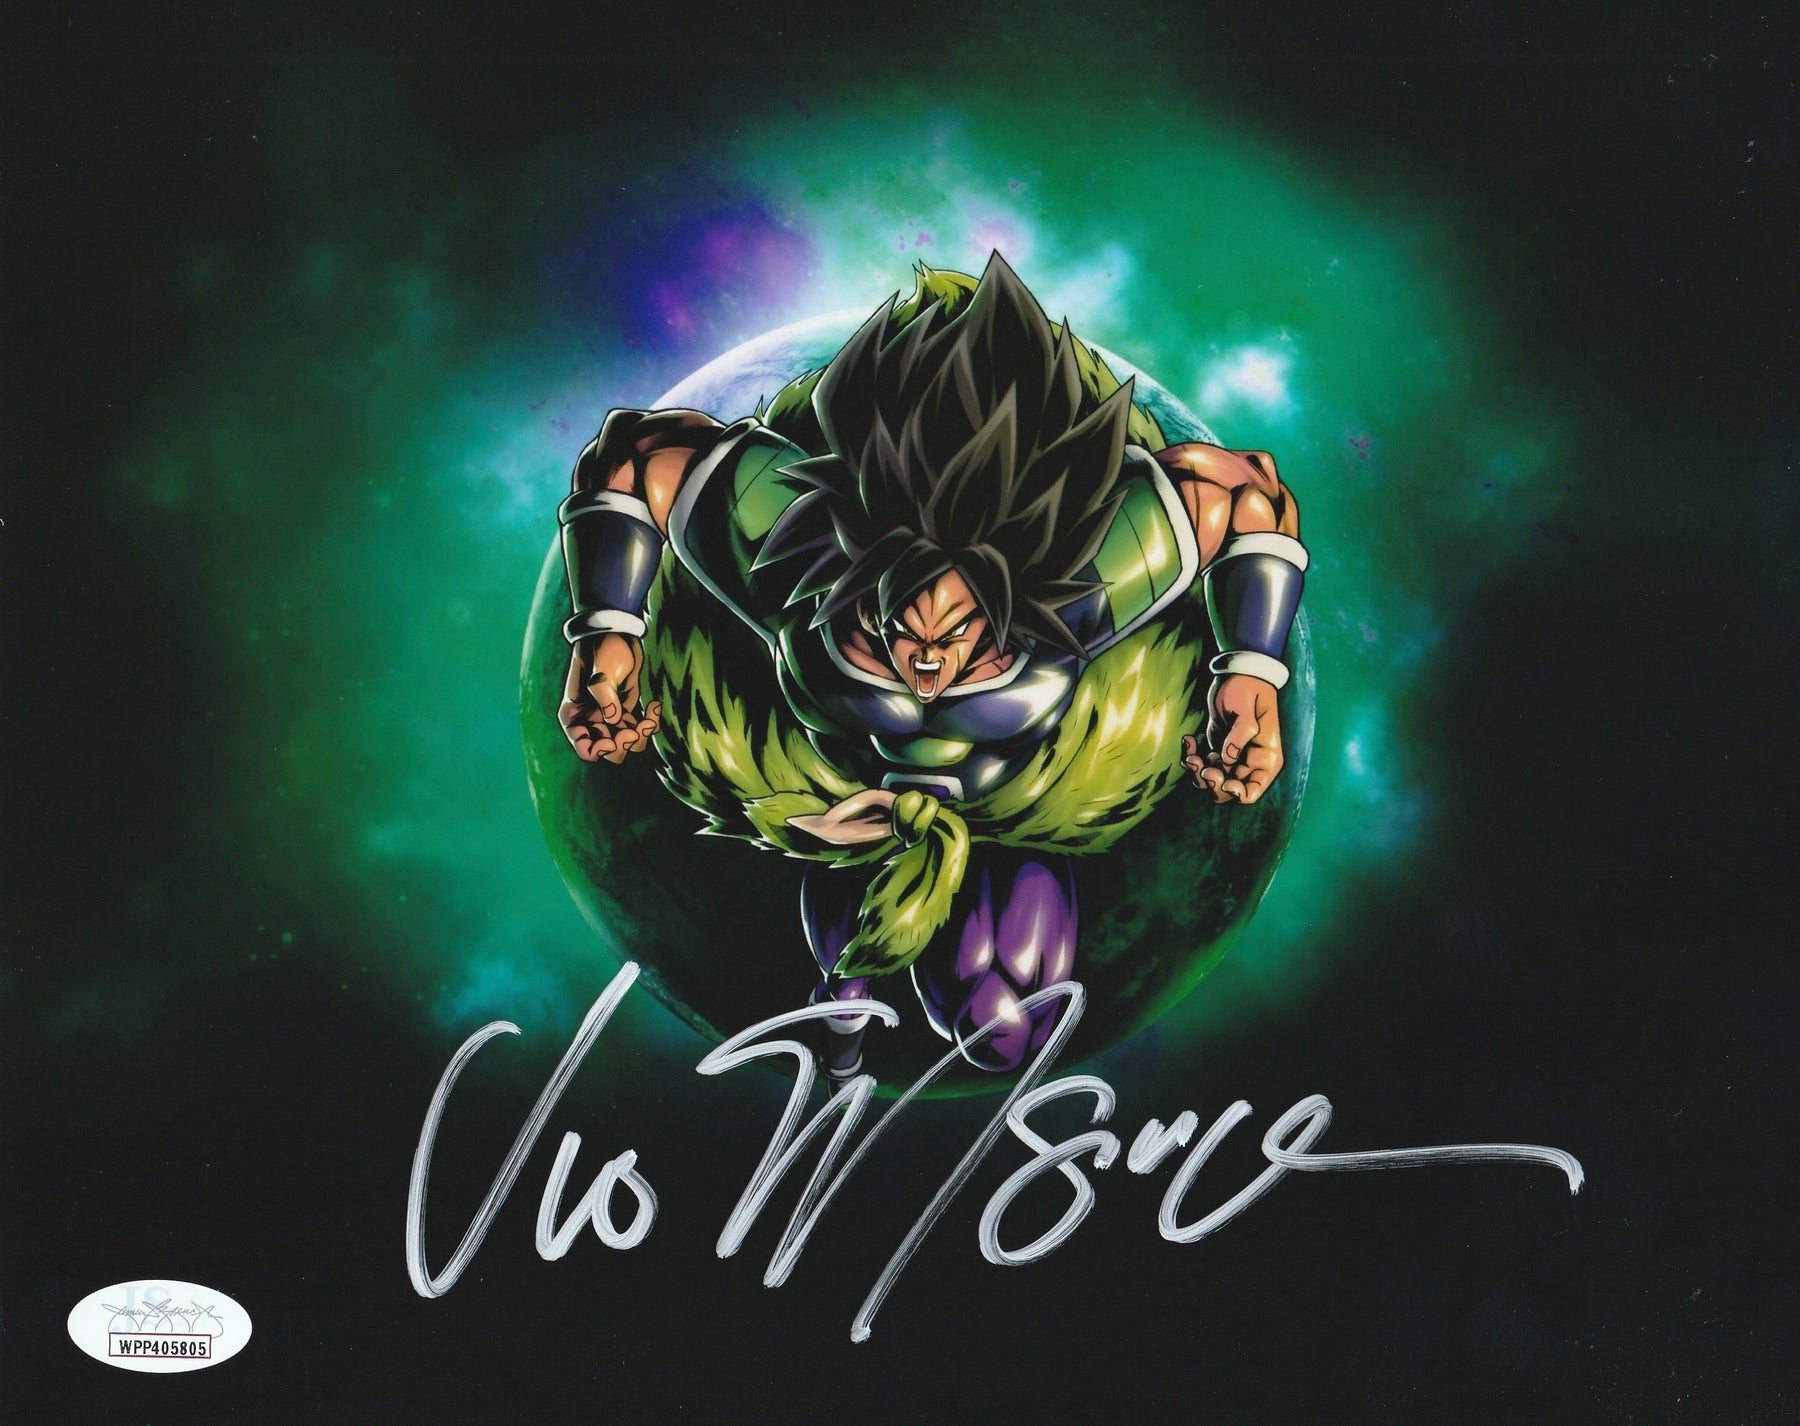 Vic Mignogna Autograph 8x10 Photo Dragon Ball Z Broly Signed JSA COA 9